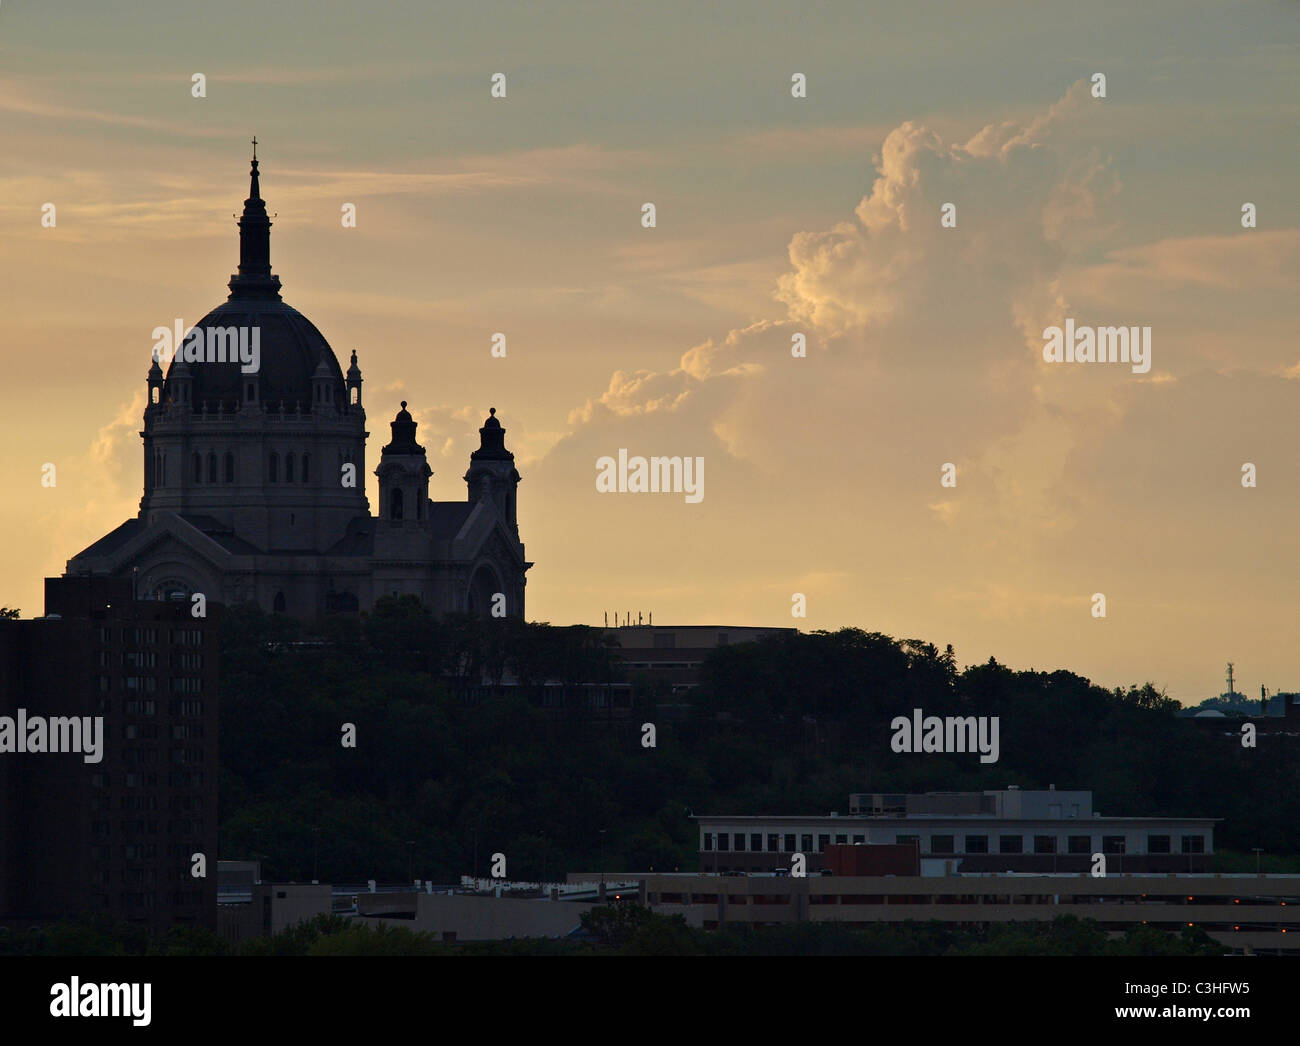 silhouette view of the Cathedral of St. Paul in St. Paul, MN on the evening of July 4th, 2010 - Stock Image